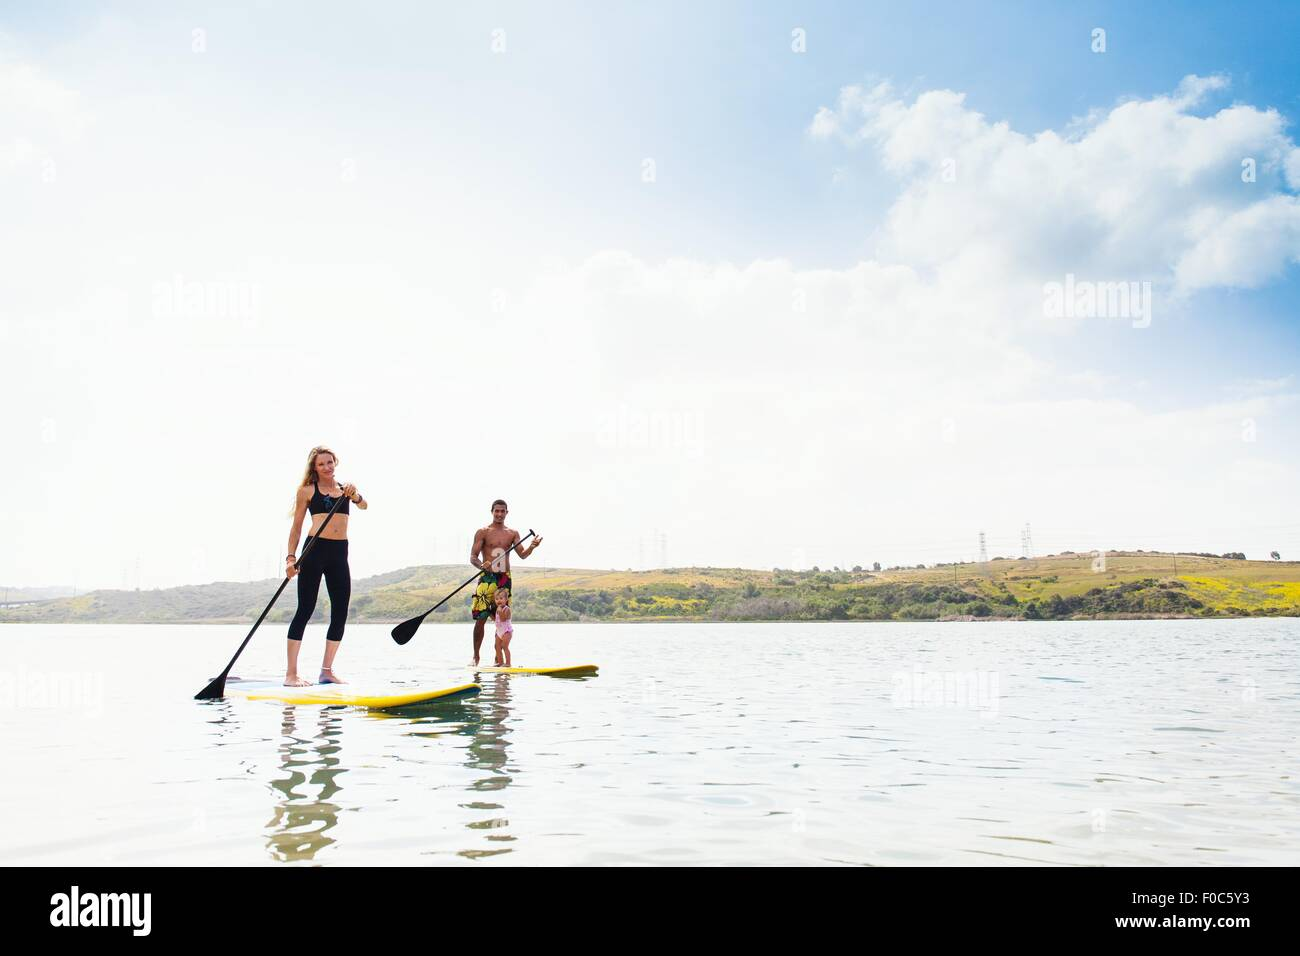 Couple and toddler daughter standup paddleboarding on tranquil sea, Carlsbad, California, USA - Stock Image